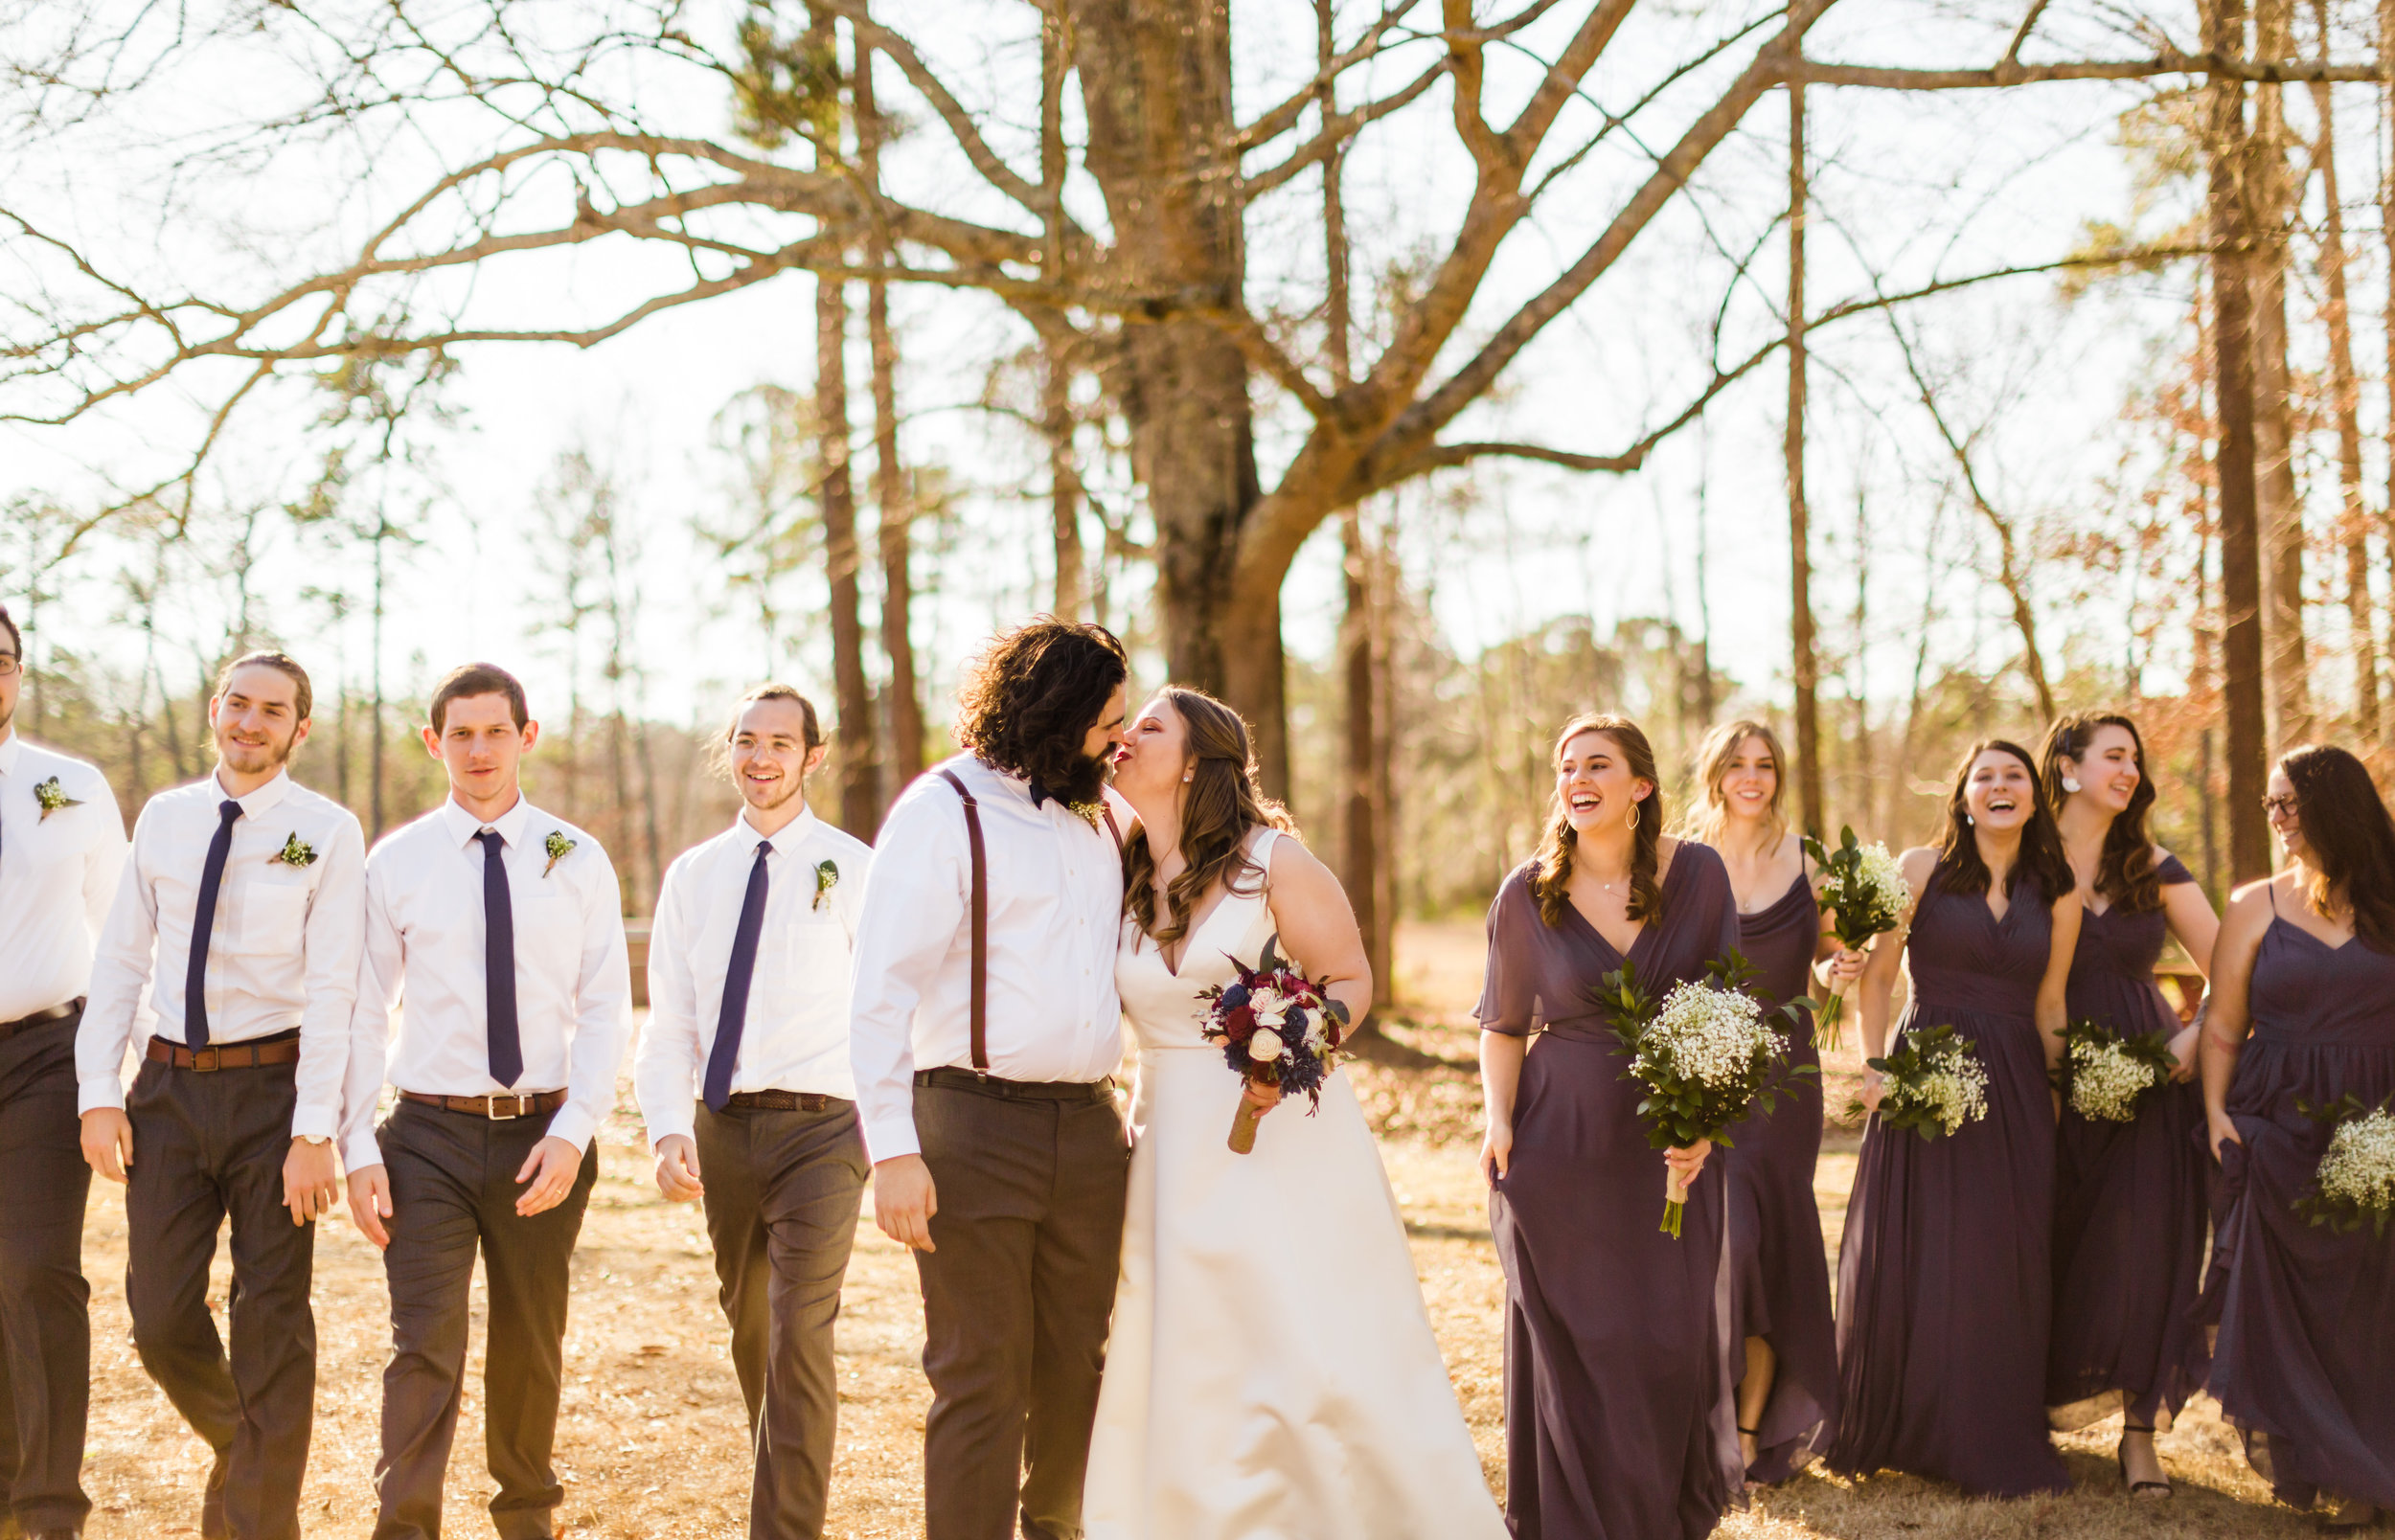 2019.01.26 Joshua and Sara Taylor North Carolina Wedding Finals (426).jpg